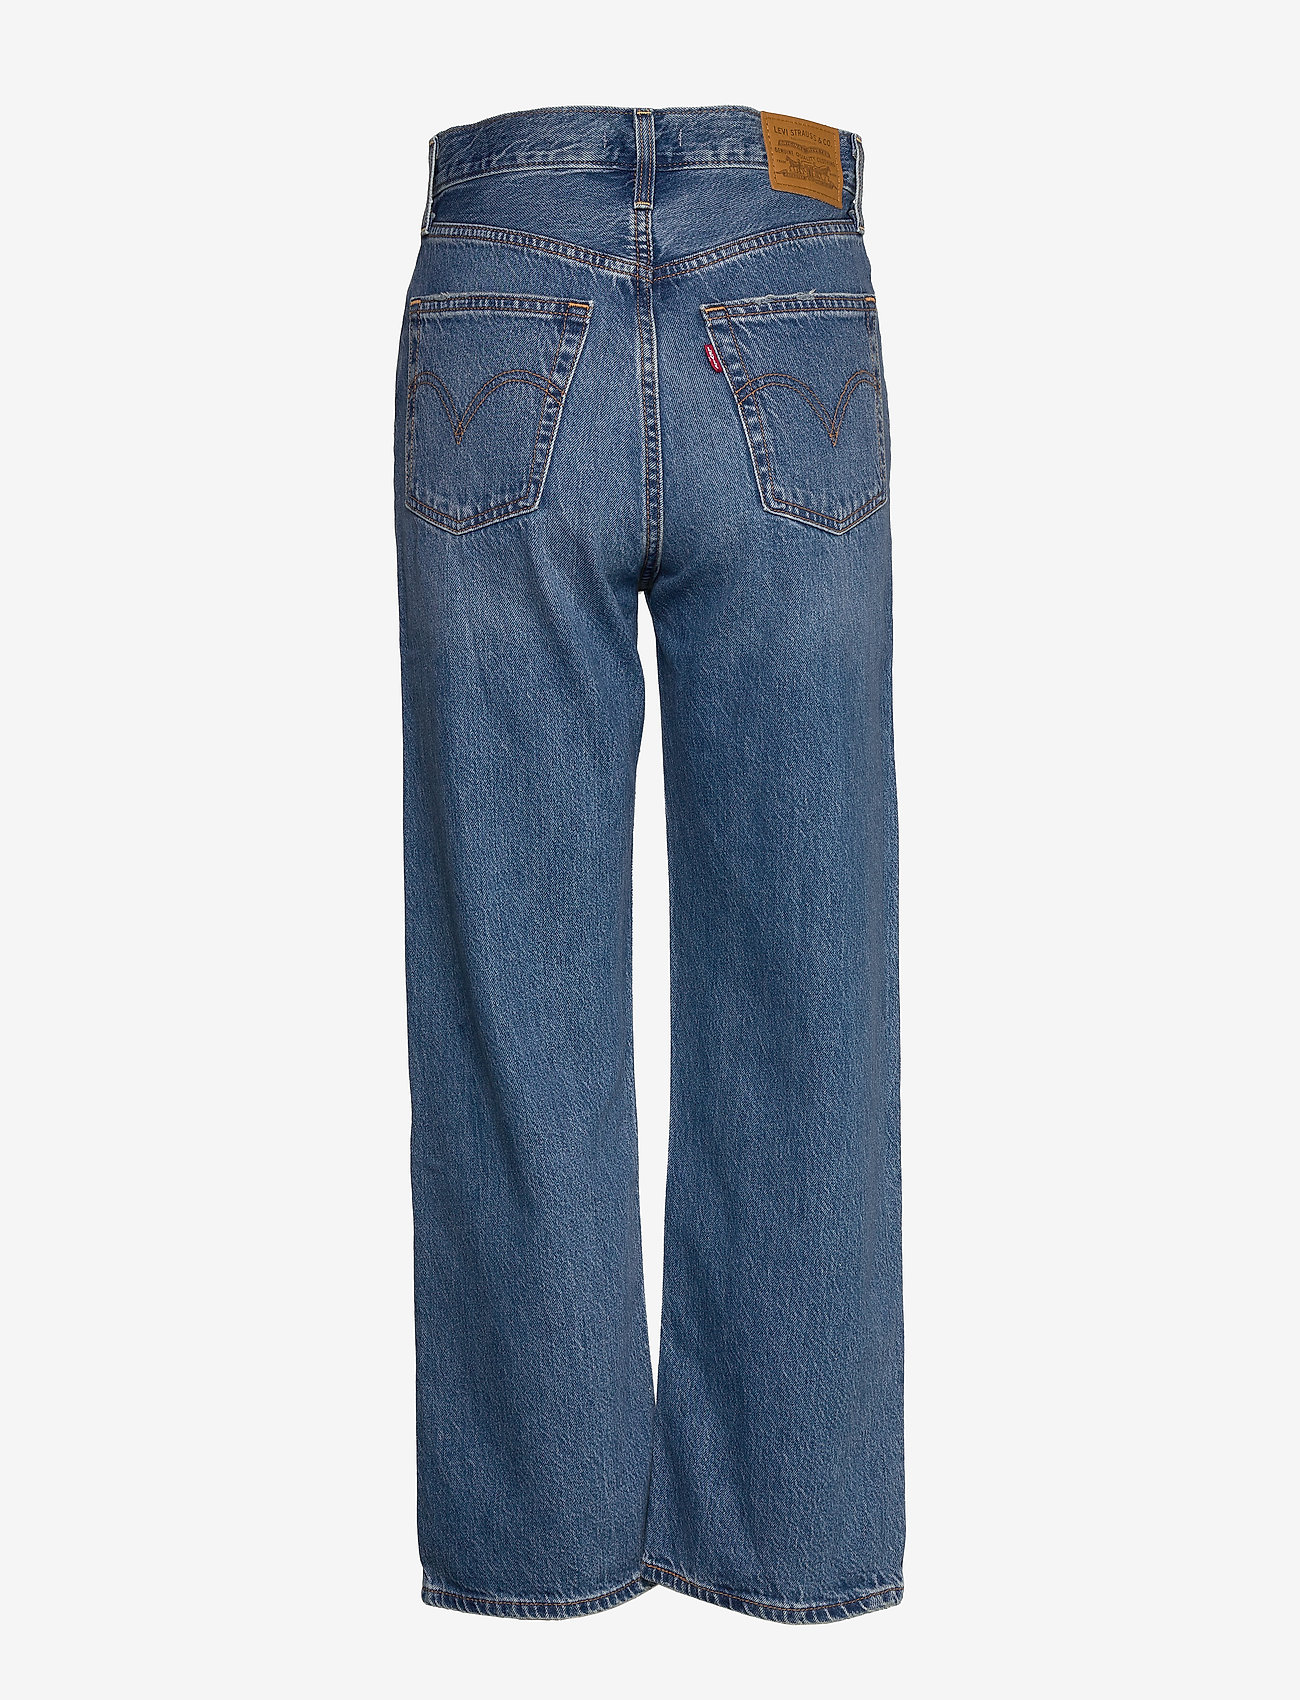 LEVI´S Women - RIBCAGE STRAIGHT ANKLE AT THE - brede jeans - med indigo - worn in - 1